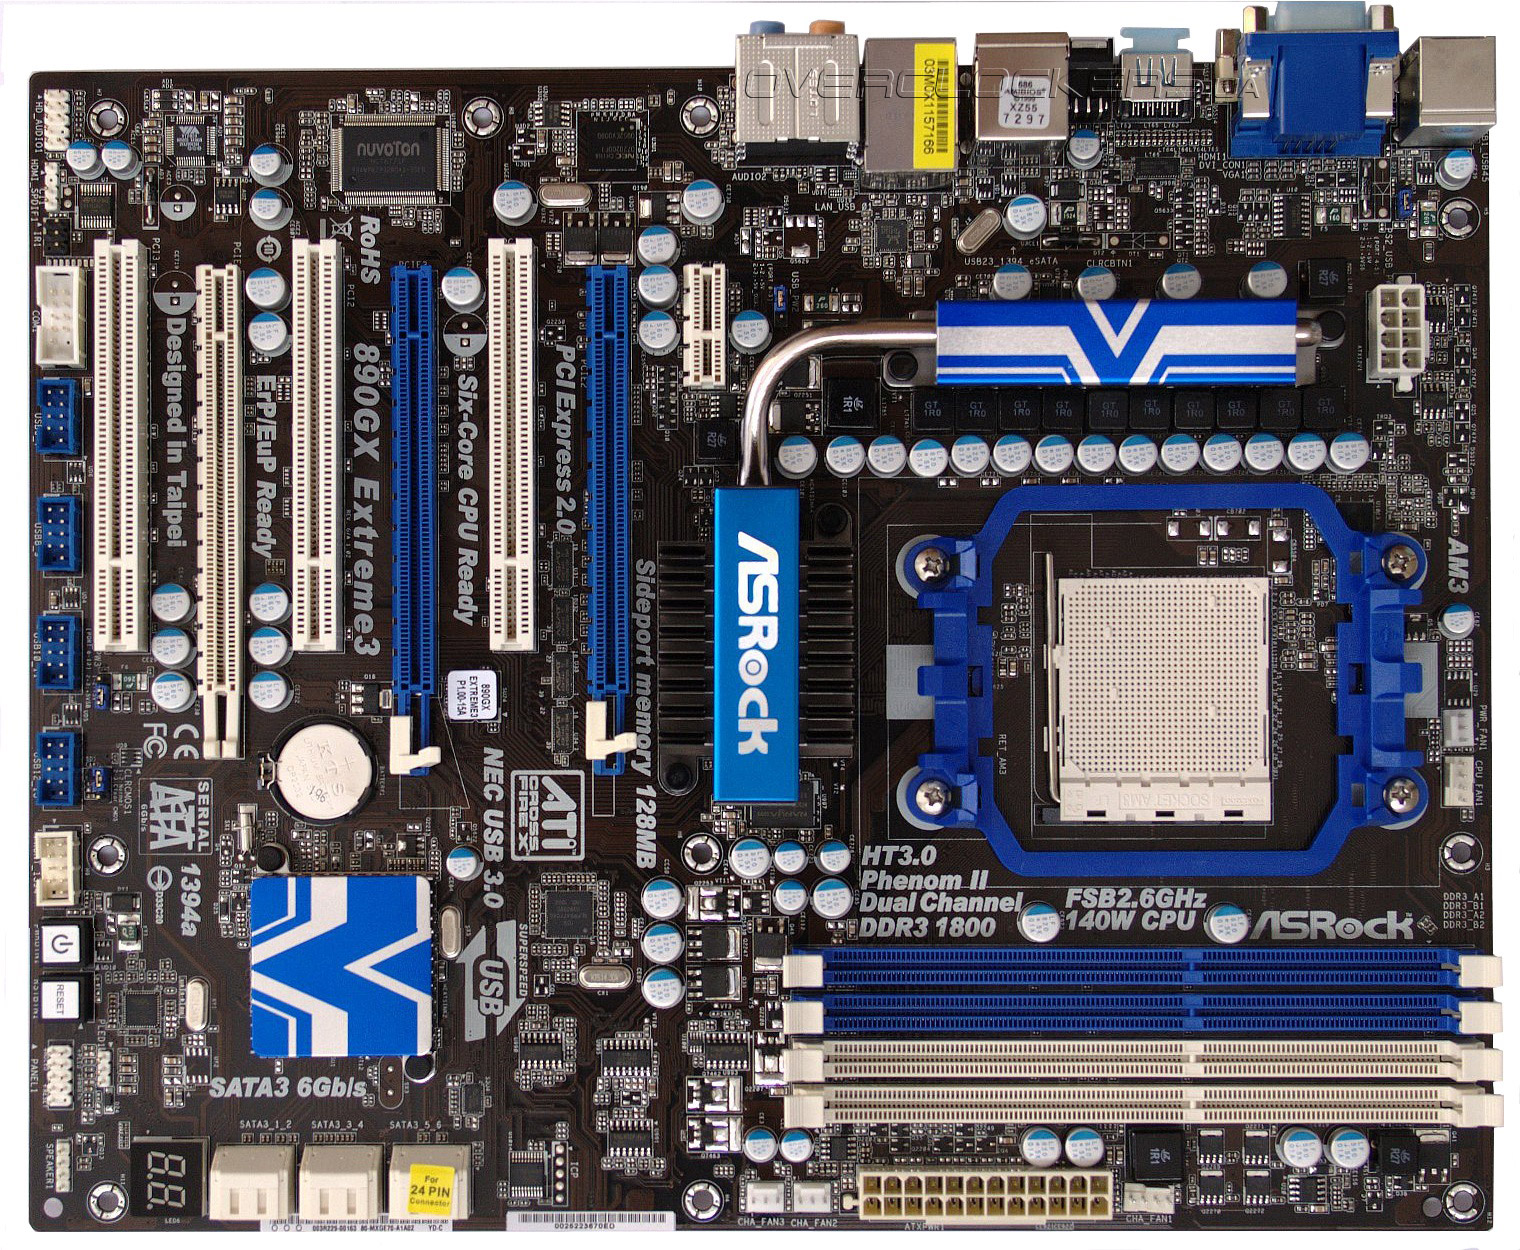 ASROCK 890GX PRO3 AMD SATA DRIVER WINDOWS